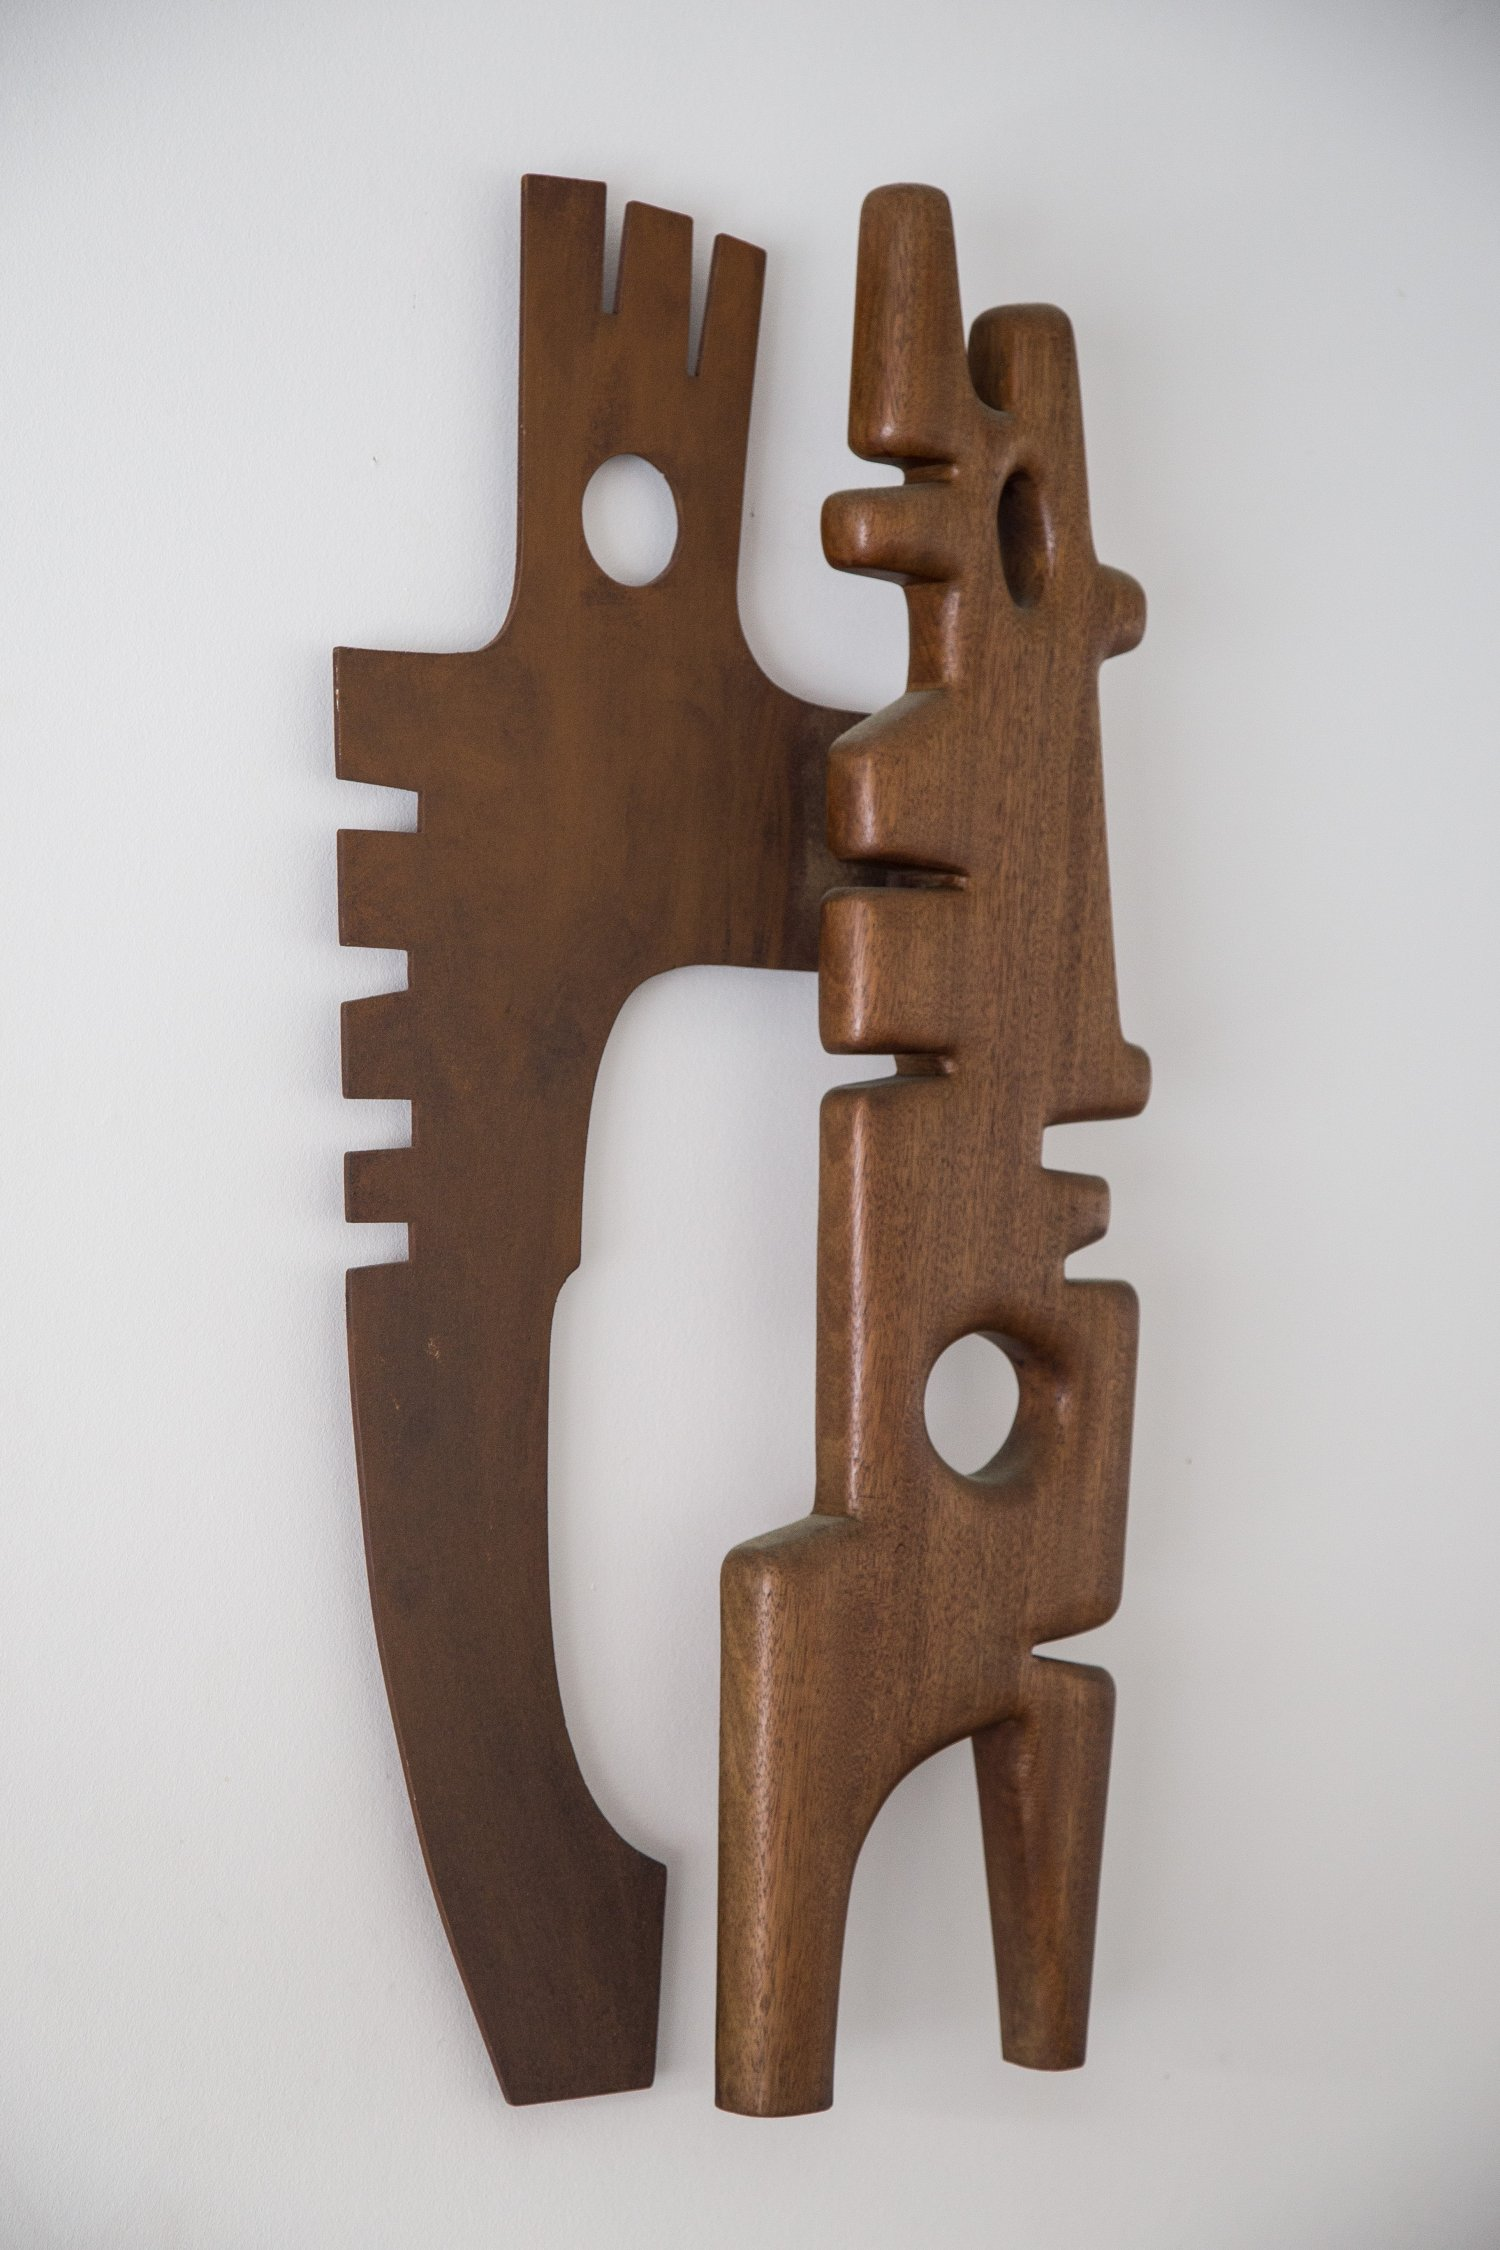 Unknown 1950's sculpture in wood and steel.